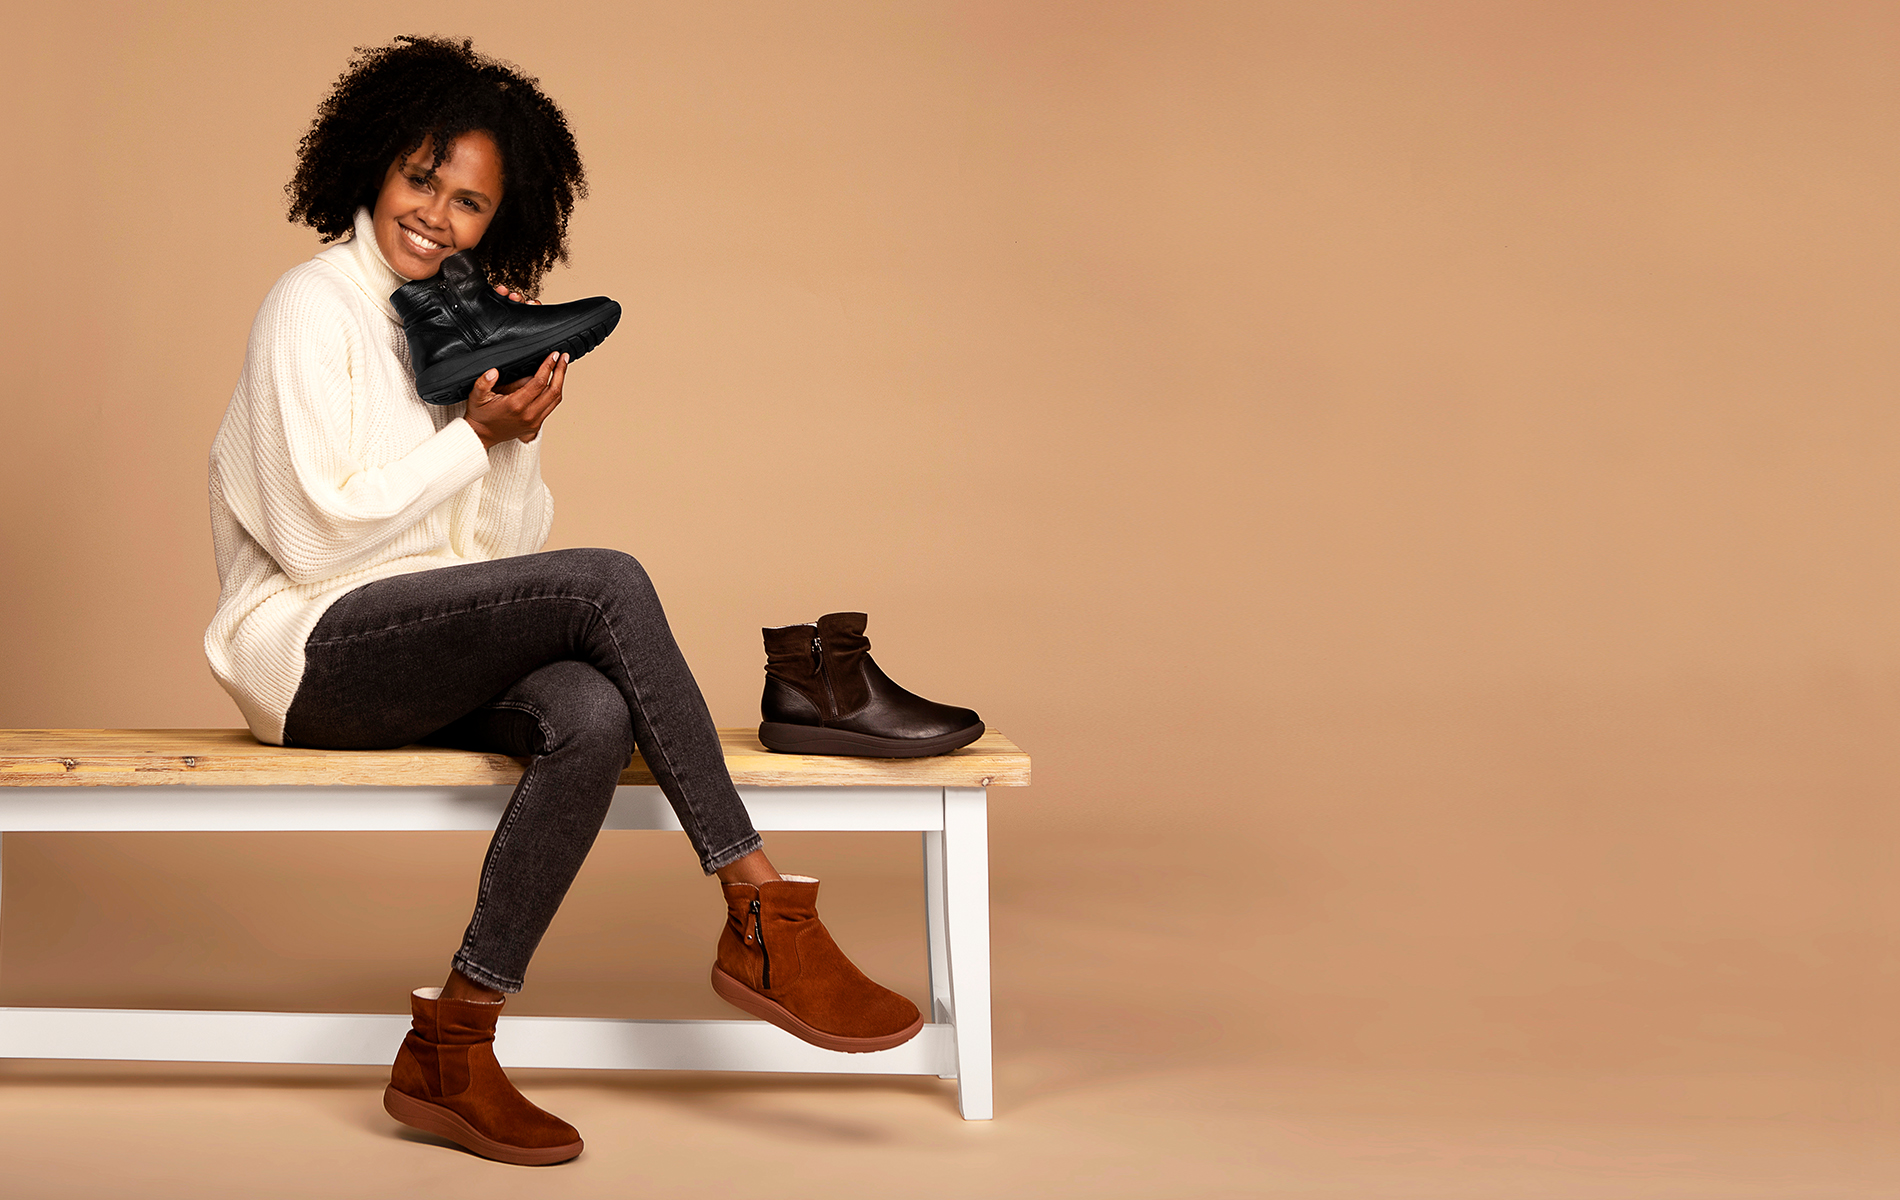 Shop all supportive footwear for women